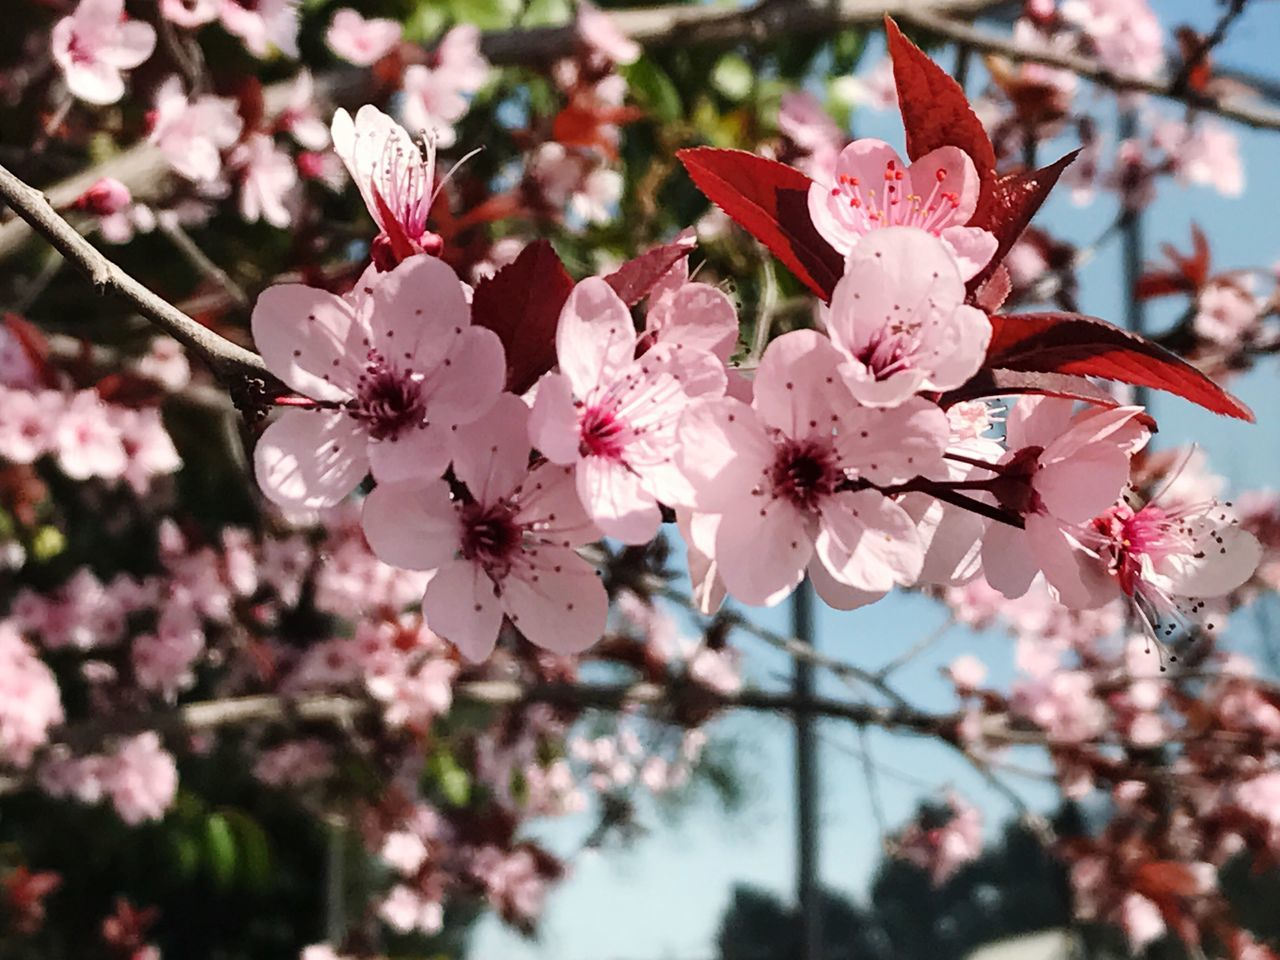 Flower Growth Nature Fragility Petal Pink Color Beauty In Nature No People Close-up Blossom Flower Head Freshness Outdoors Day Sakura Cherry Blossoms Japanese